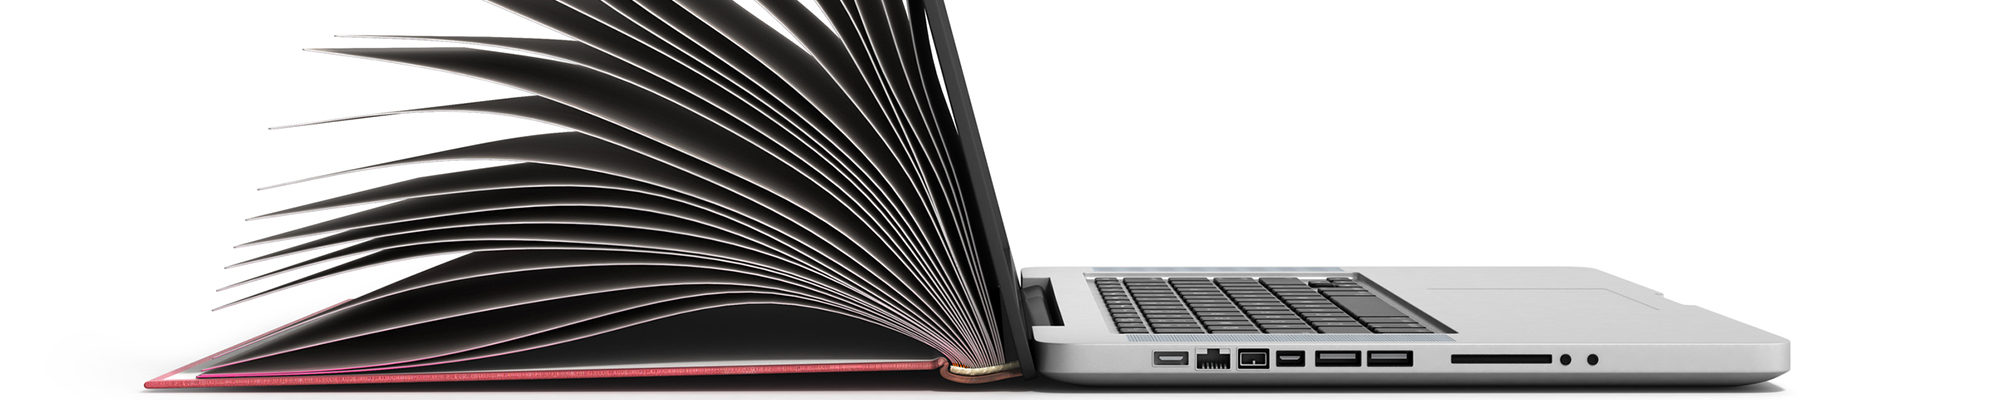 A photo of a book transitioning to laptop